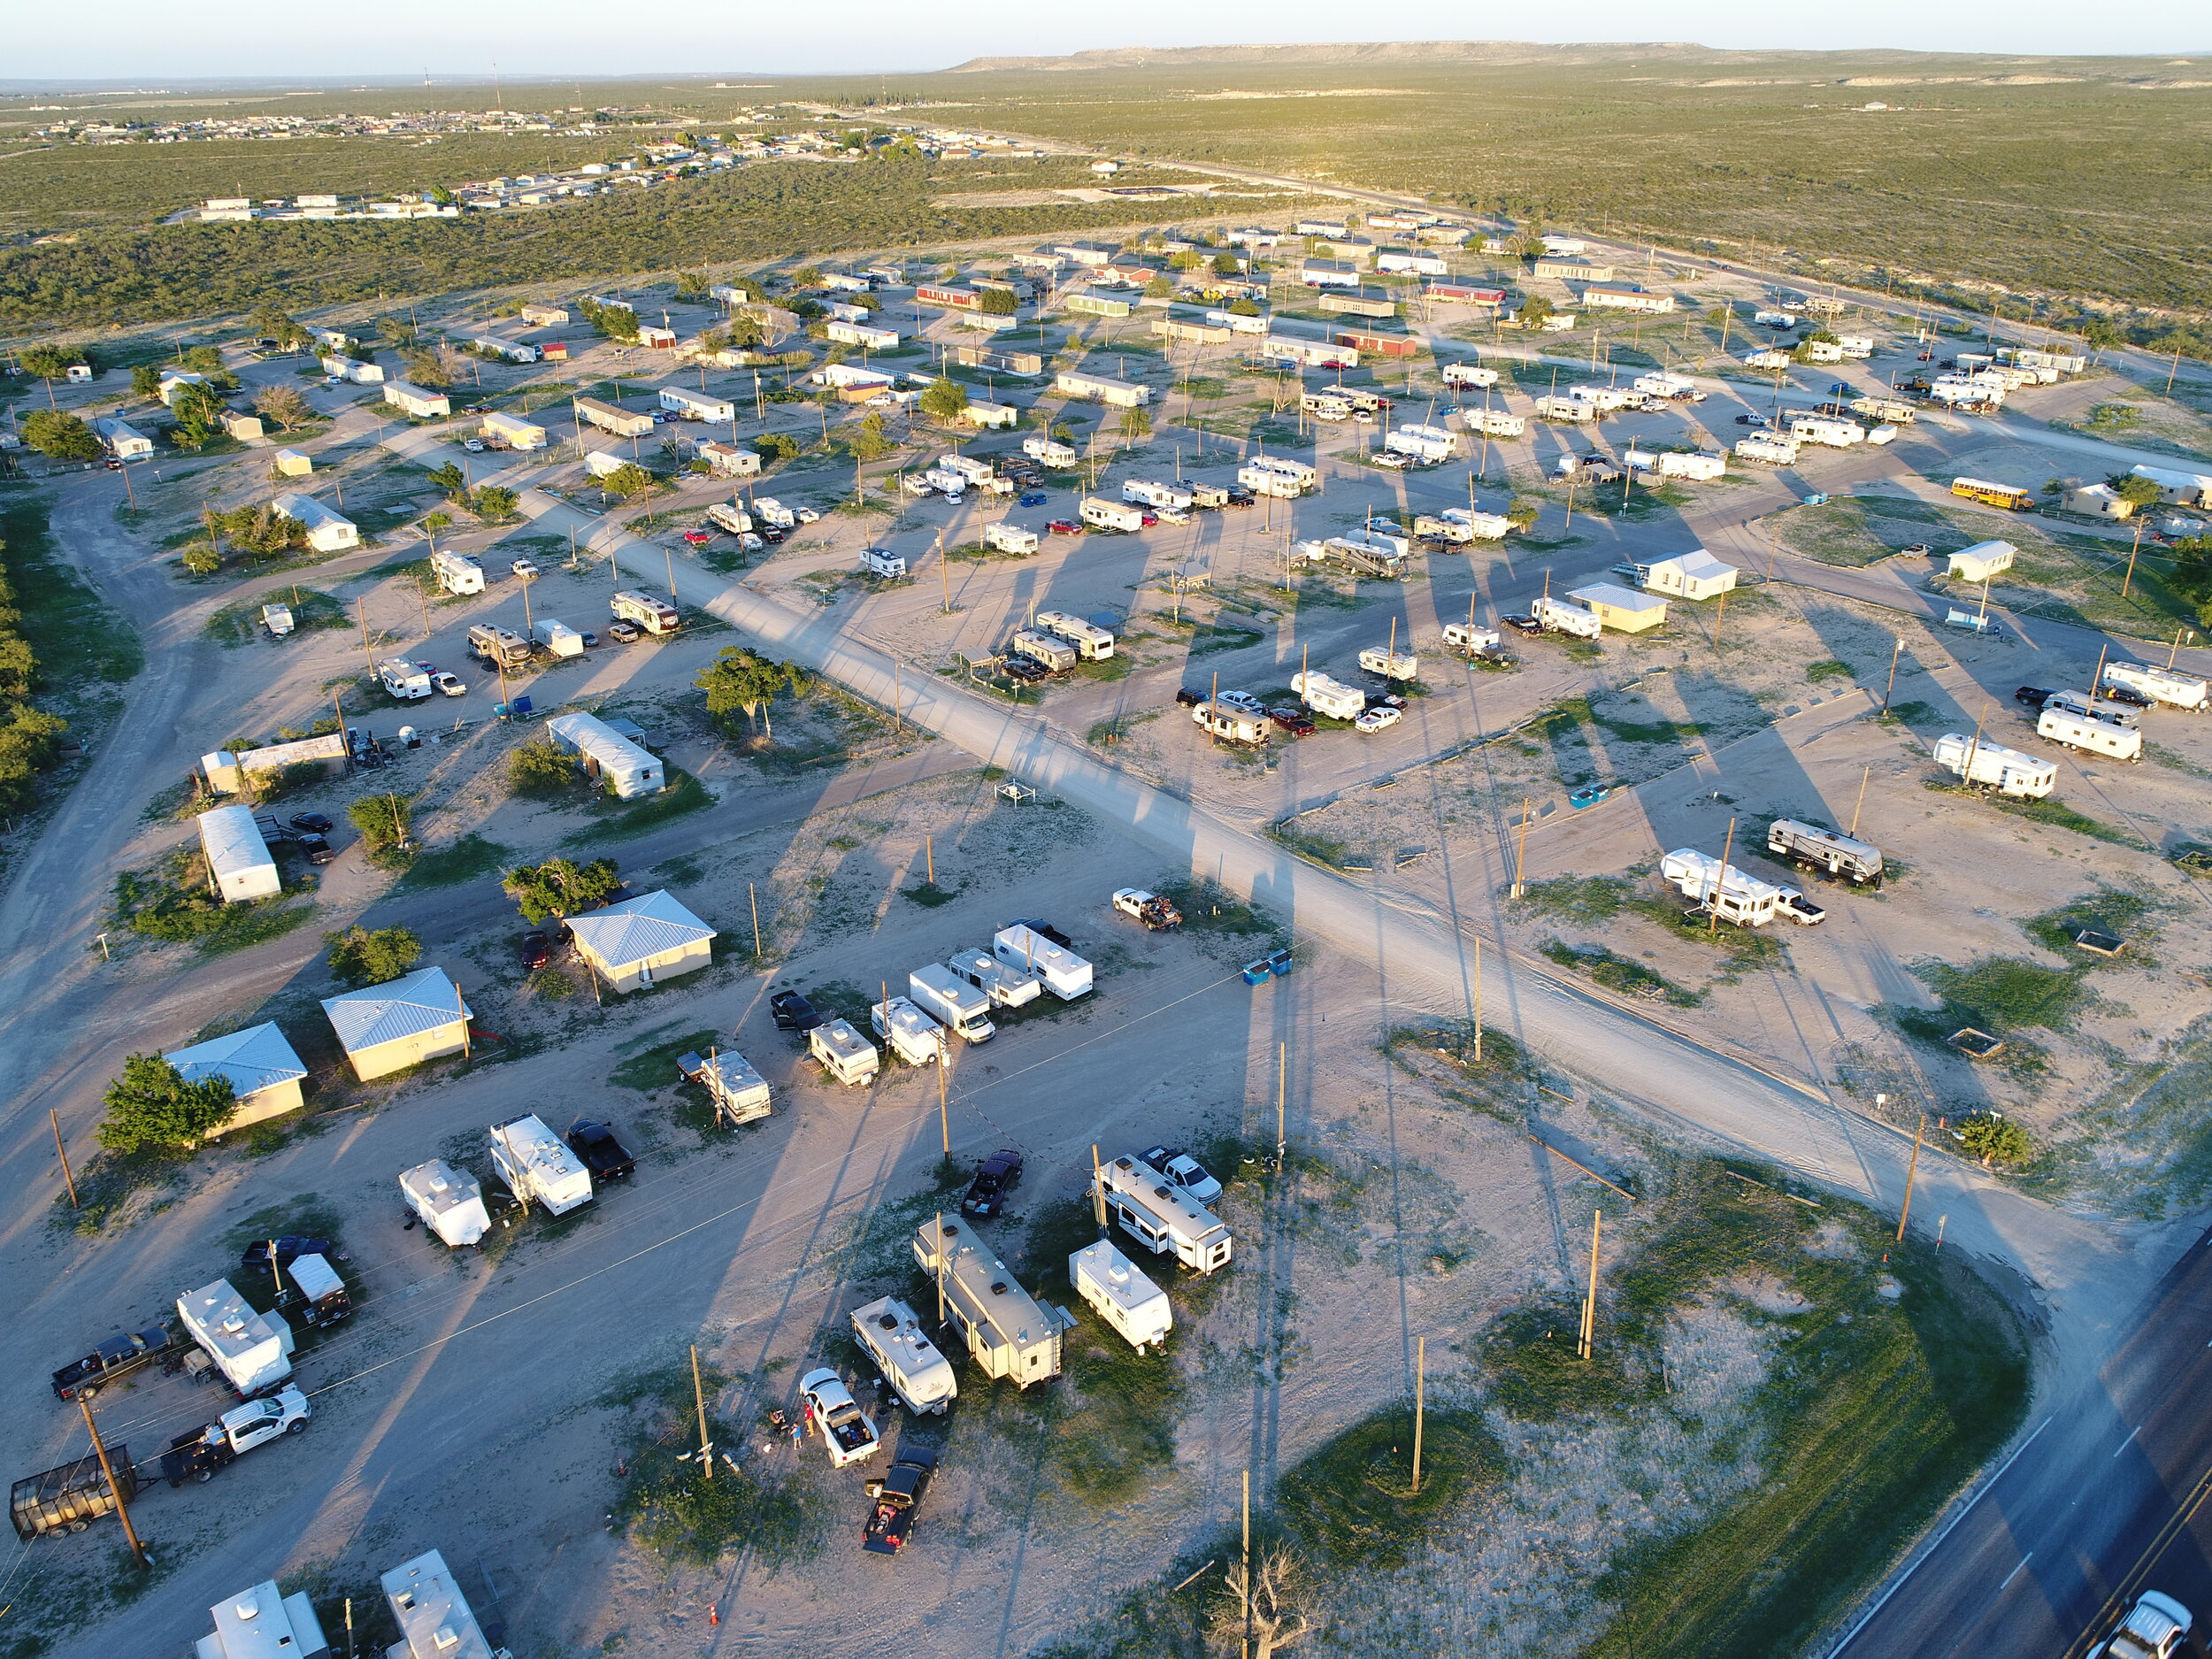 Road Runner is well located right in the heart of Fort Stockton